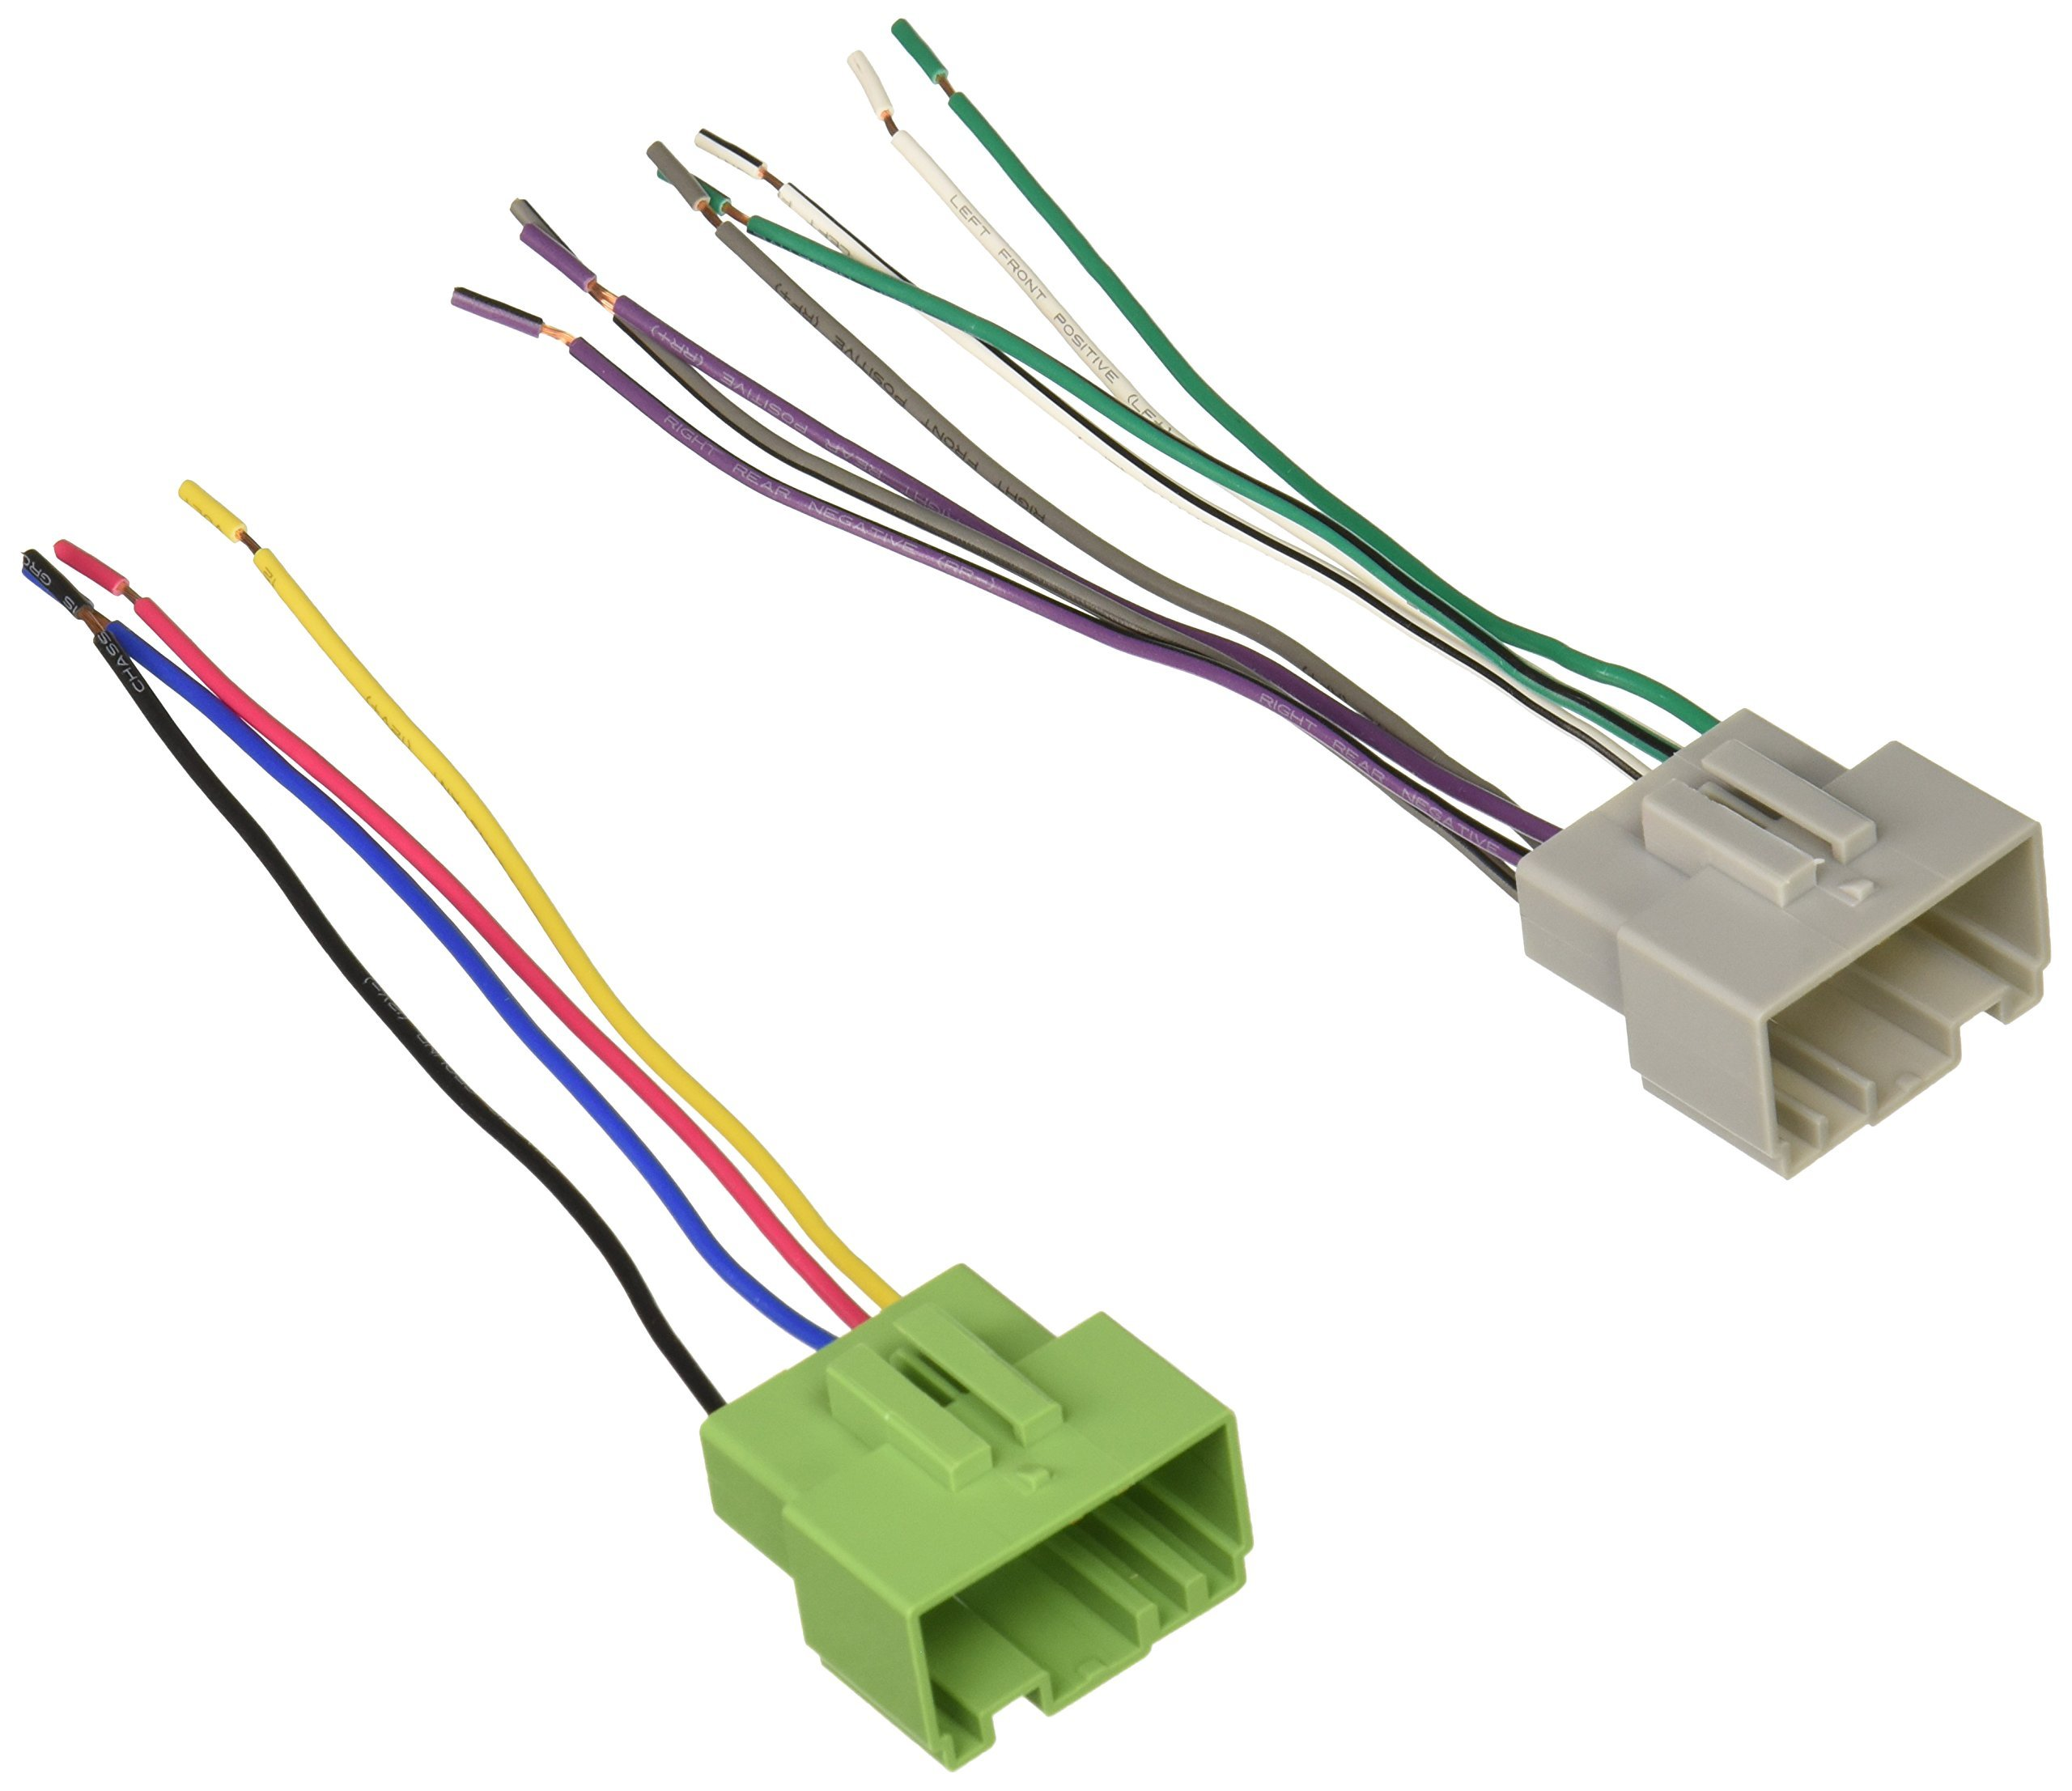 Buy Scosche Radio Wiring Harness For 2000 Volvo S40 Speaker Stereo Adapter S80 Connector